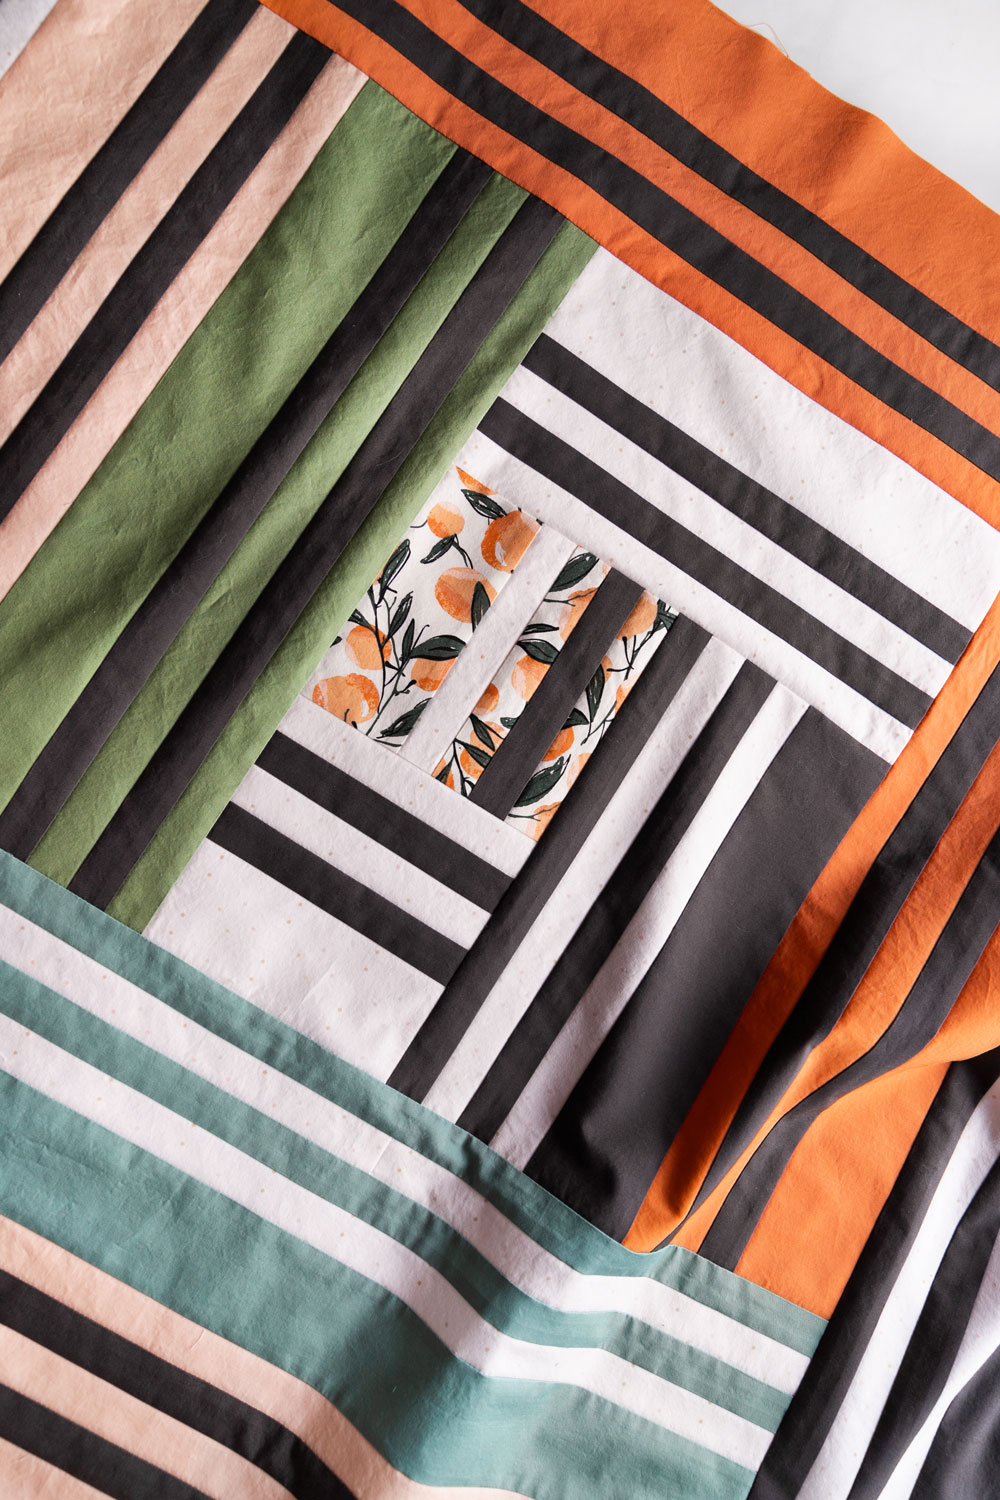 In Weeks 5 and 6 of the Grow quilt sew along we assemble the quilt top. Check out this video tutorial to show you how simple it is! suzyquilts.com #quilting #modernquiltpattern